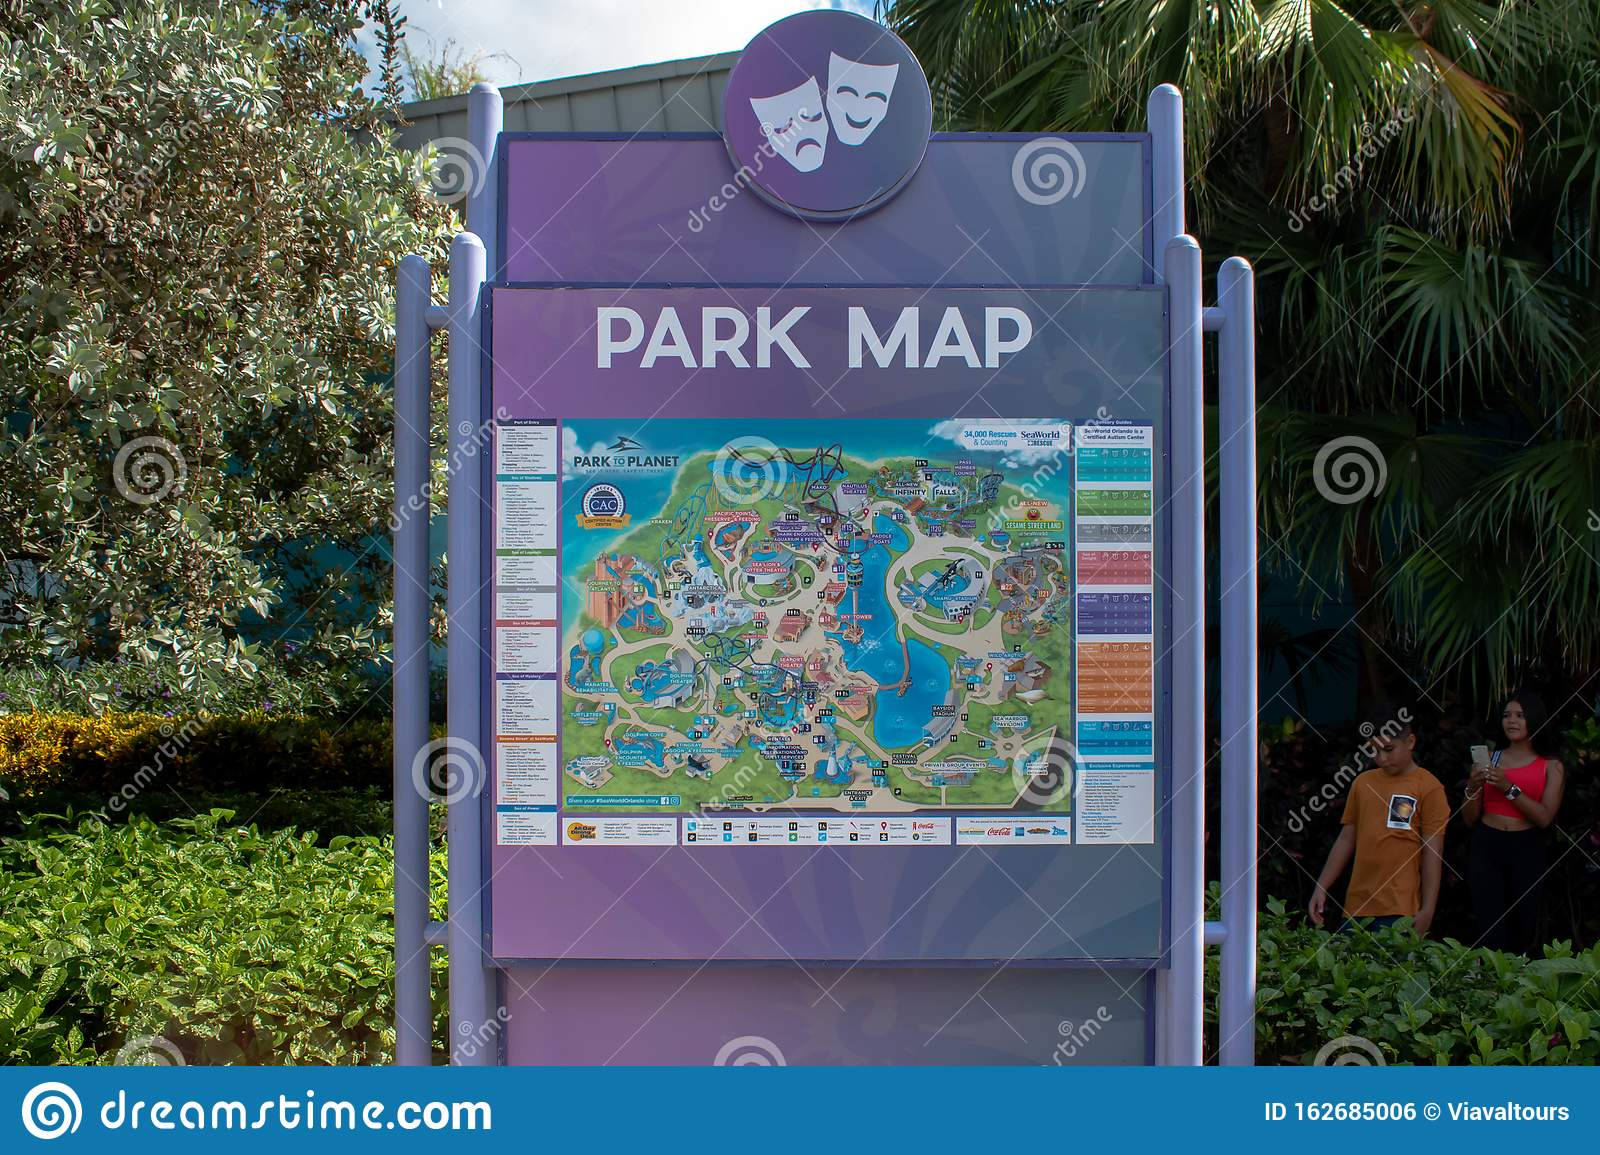 map of i drive orlando Park Map At Seaworld In International Drive Editorial Photo map of i drive orlando